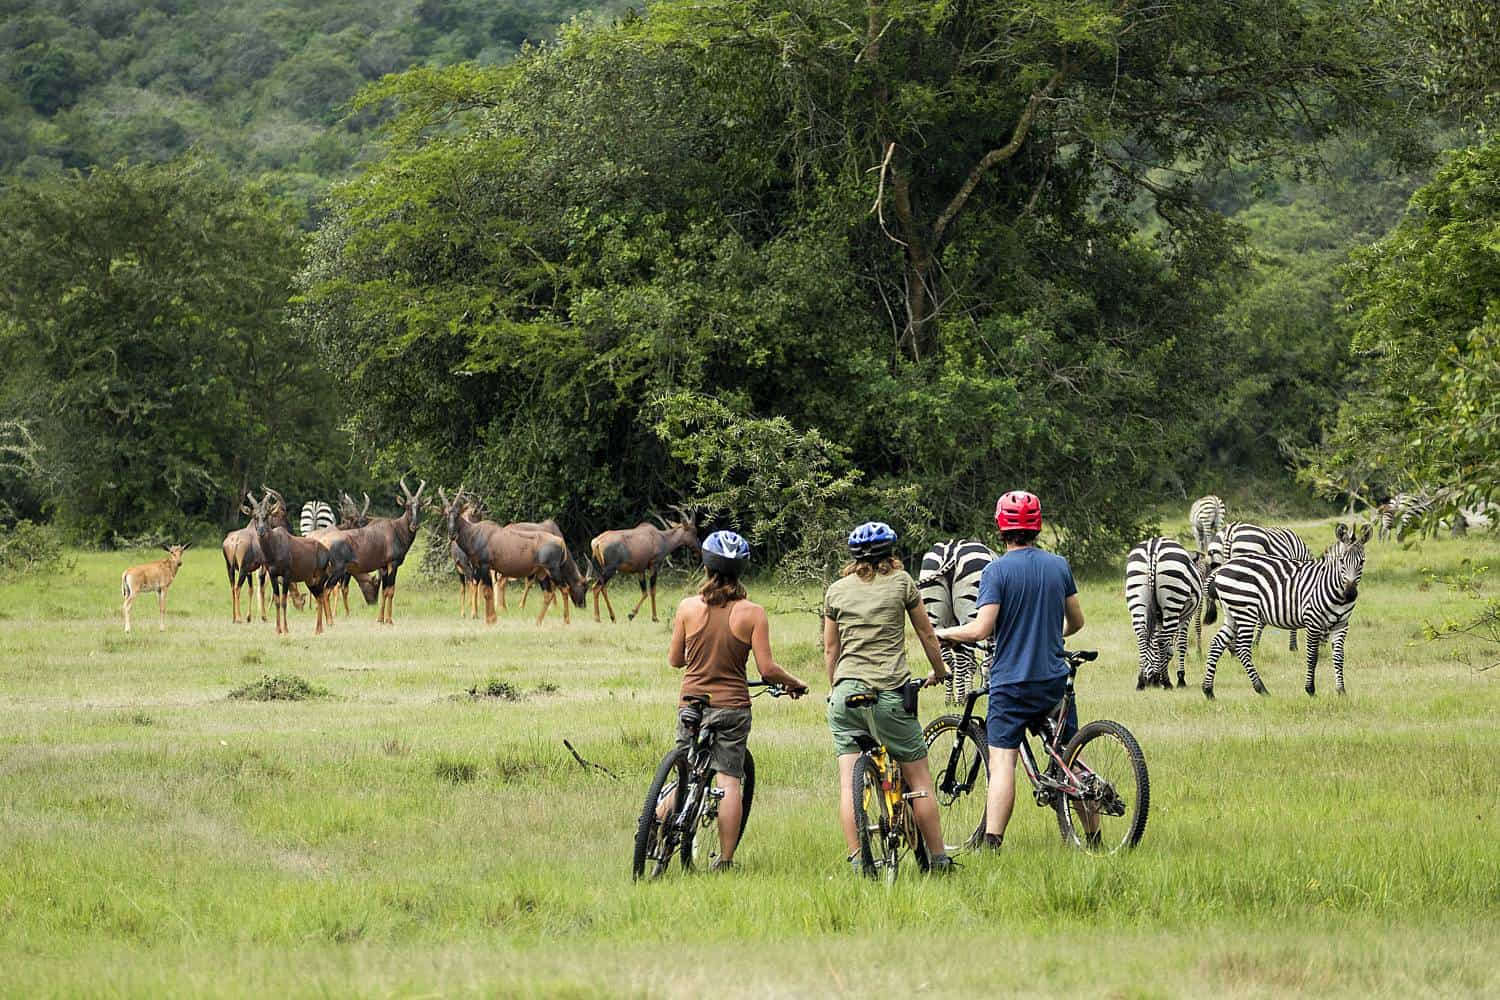 A One-Stop Safari Country For A Range Of Adventures - Exciting Or Tranquil